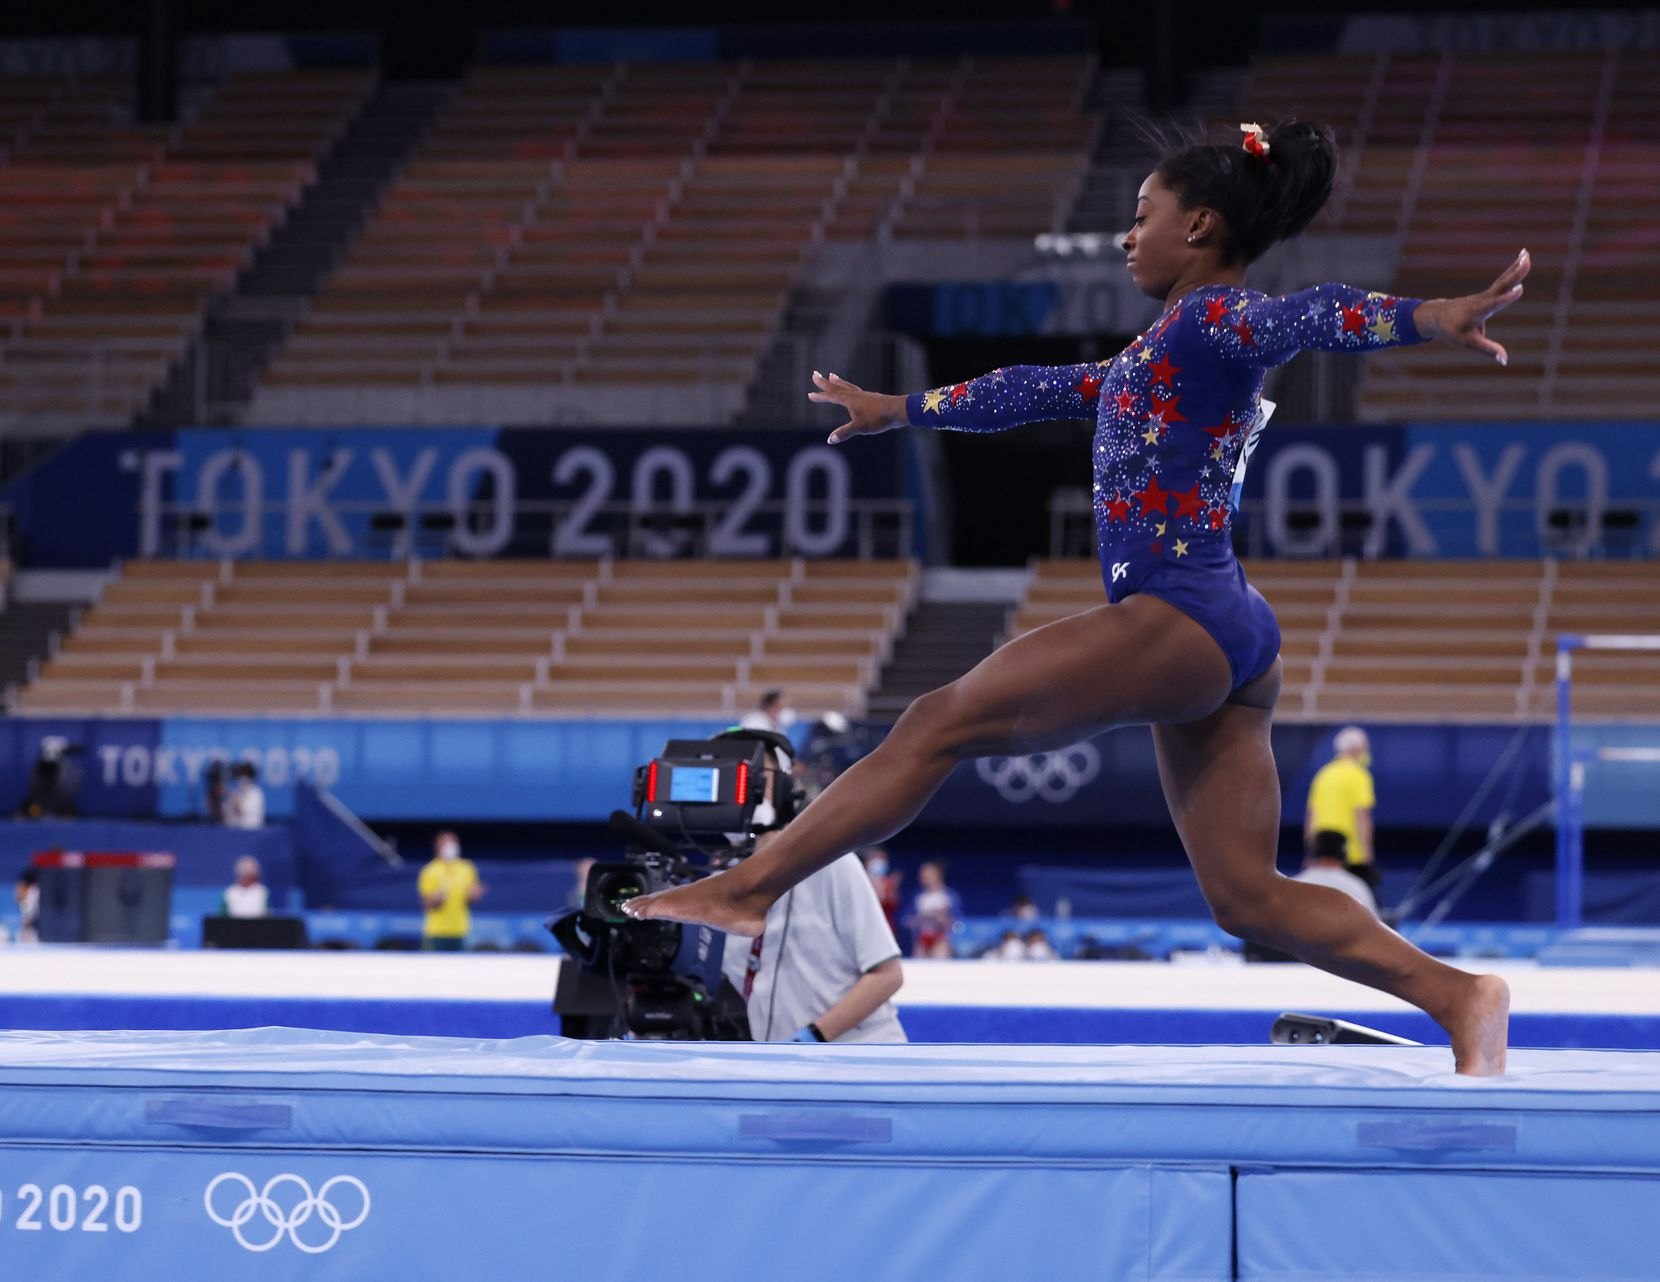 USA's Simone Biles takes a few steps upon landing while competing on the balance beam in a women's gymnastics event during the postponed 2020 Tokyo Olympics at Ariake  Gymnastics Centre on Sunday, July 25, 2021, in Tokyo, Japan. (Vernon Bryant/The Dallas Morning News)